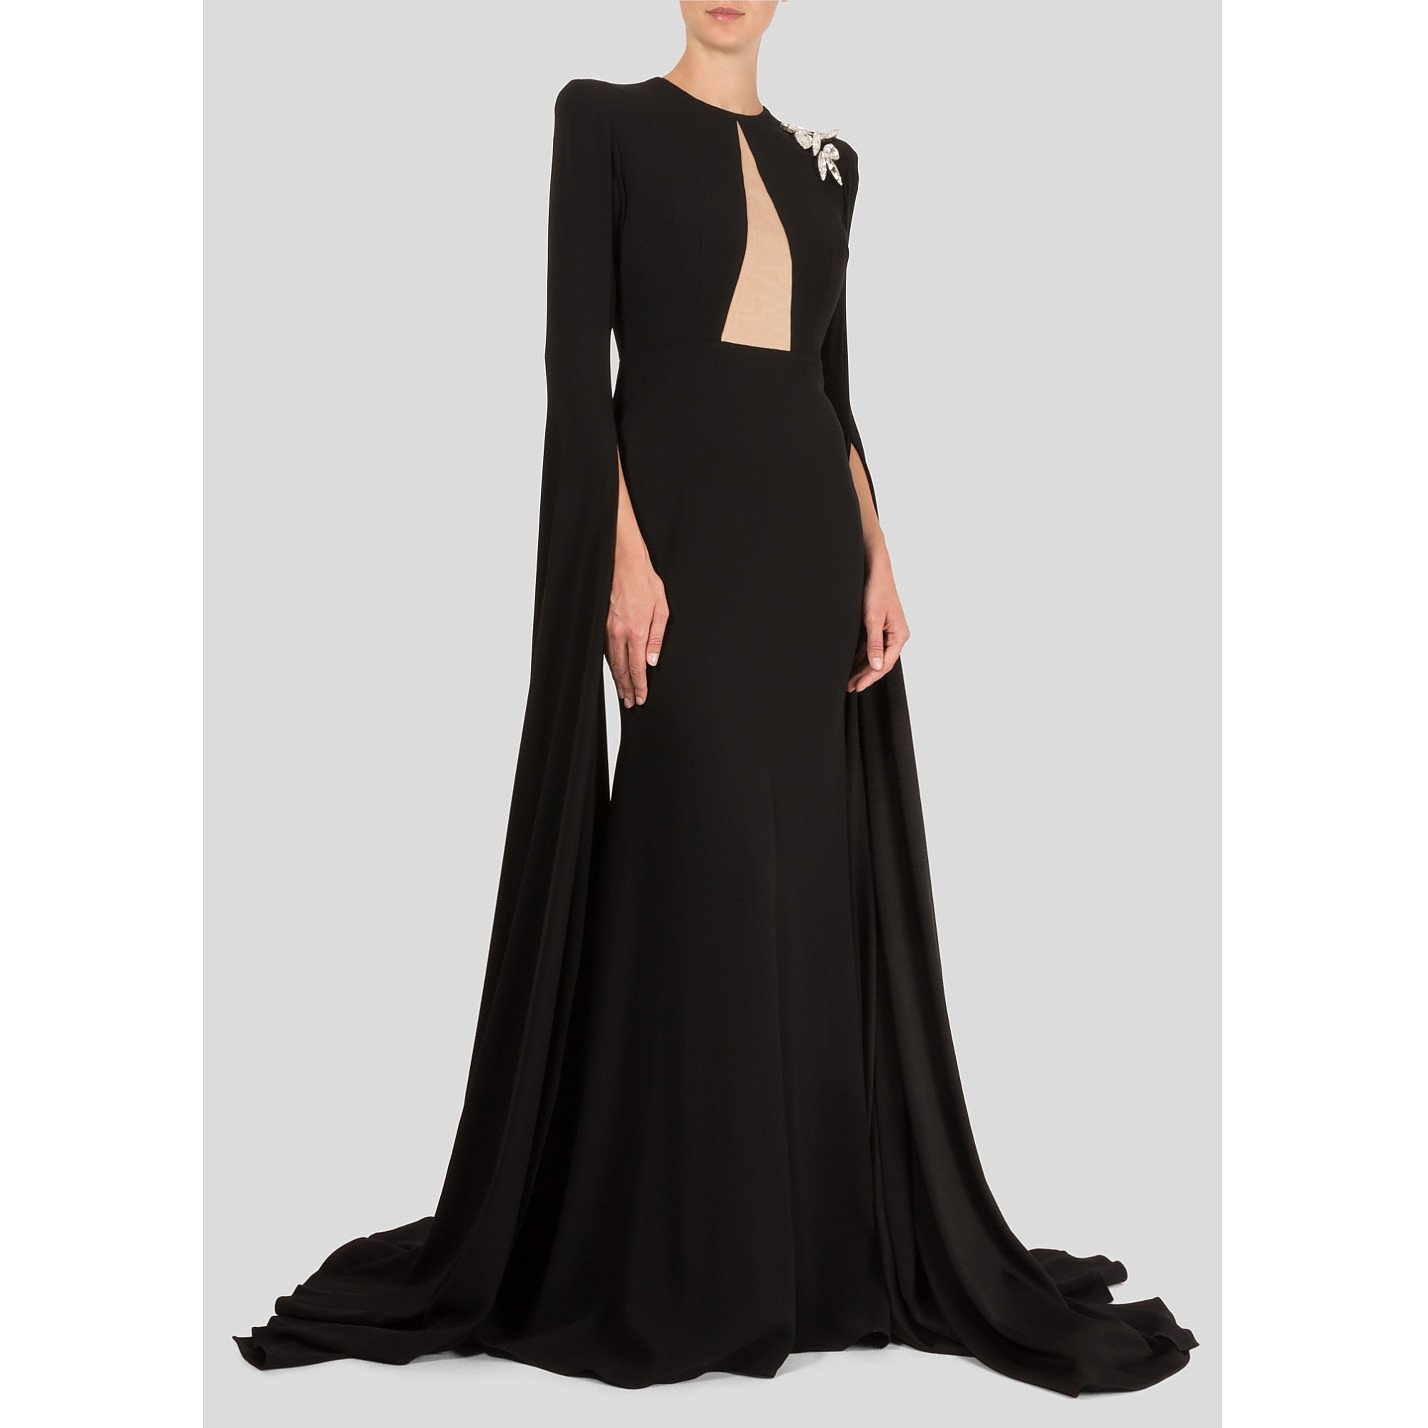 Alex Perry Gown With Exaggerated Sleeves